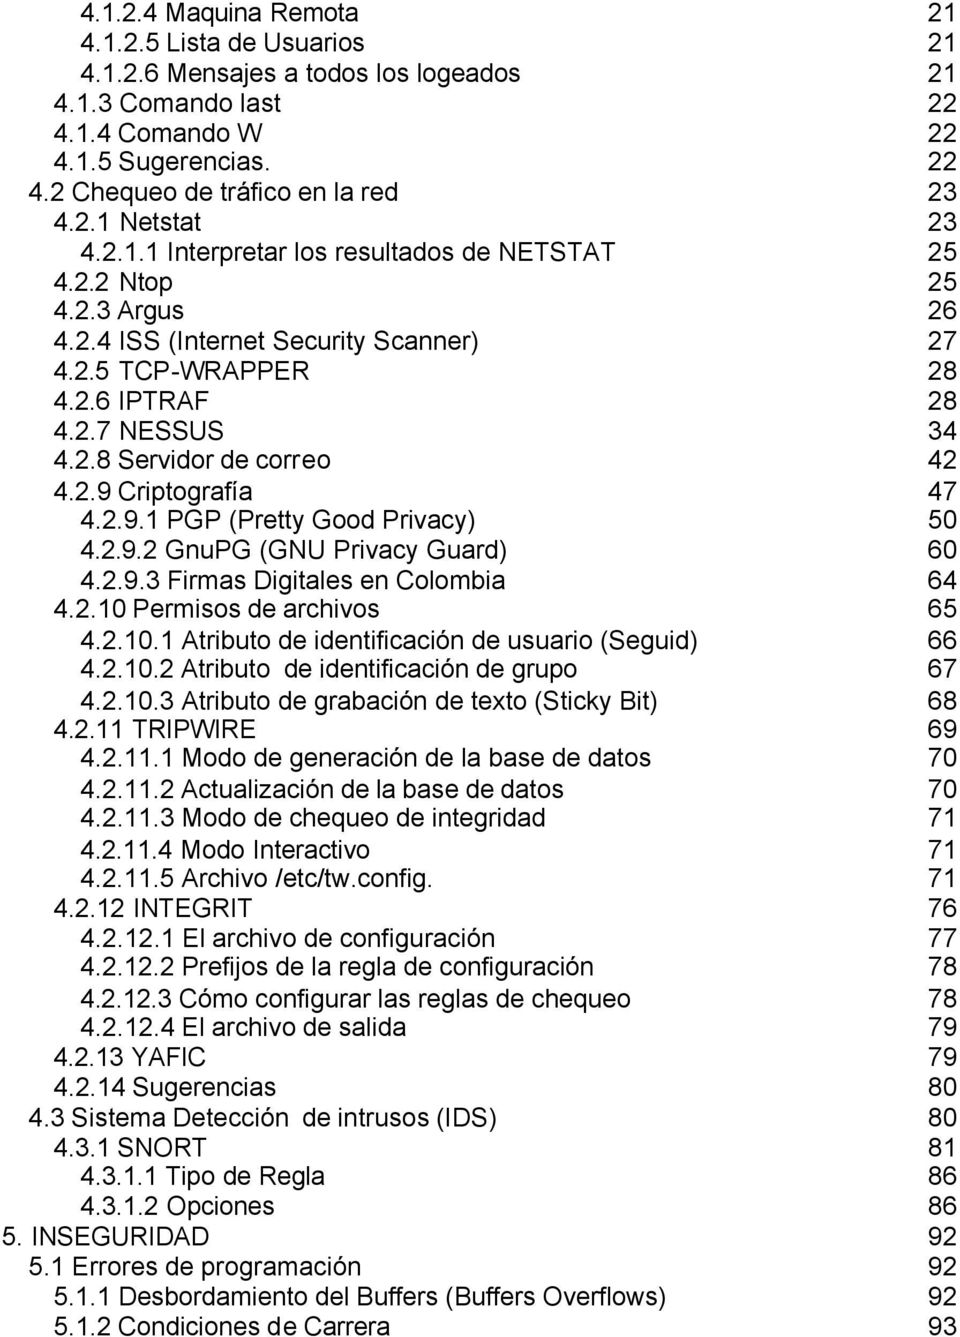 2.9 Criptografía 47 4.2.9.1 PGP (Pretty Good Privacy) 50 4.2.9.2 GnuPG (GNU Privacy Guard) 60 4.2.9.3 Firmas Digitales en Colombia 64 4.2.10 Permisos de archivos 65 4.2.10.1 Atributo de identificación de usuario (Seguid) 66 4.